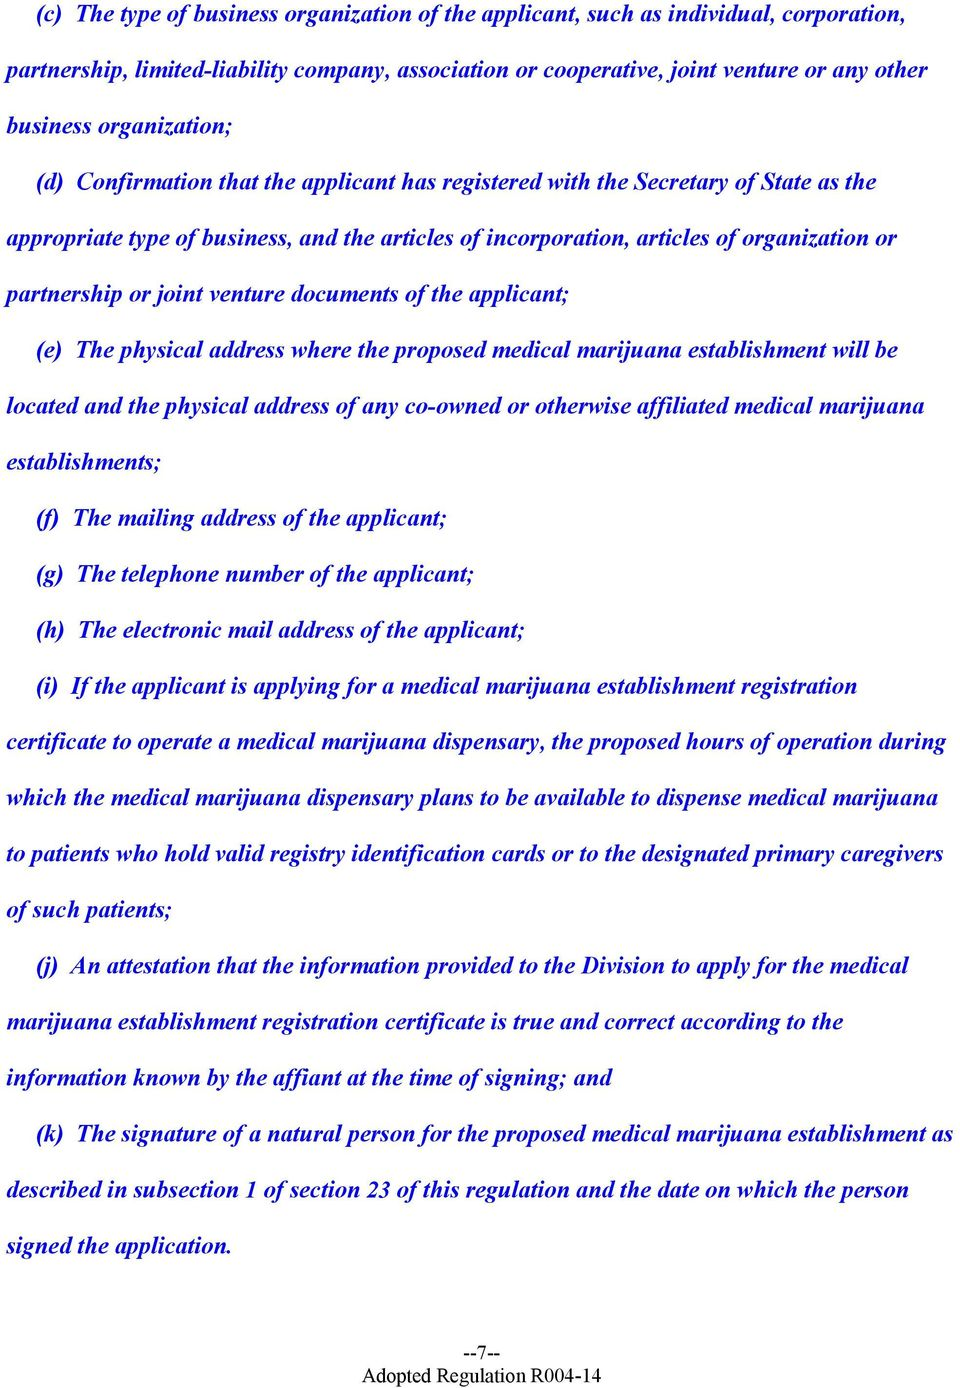 partnership or joint venture documents of the applicant; (e) The physical address where the proposed medical marijuana establishment will be located and the physical address of any co-owned or